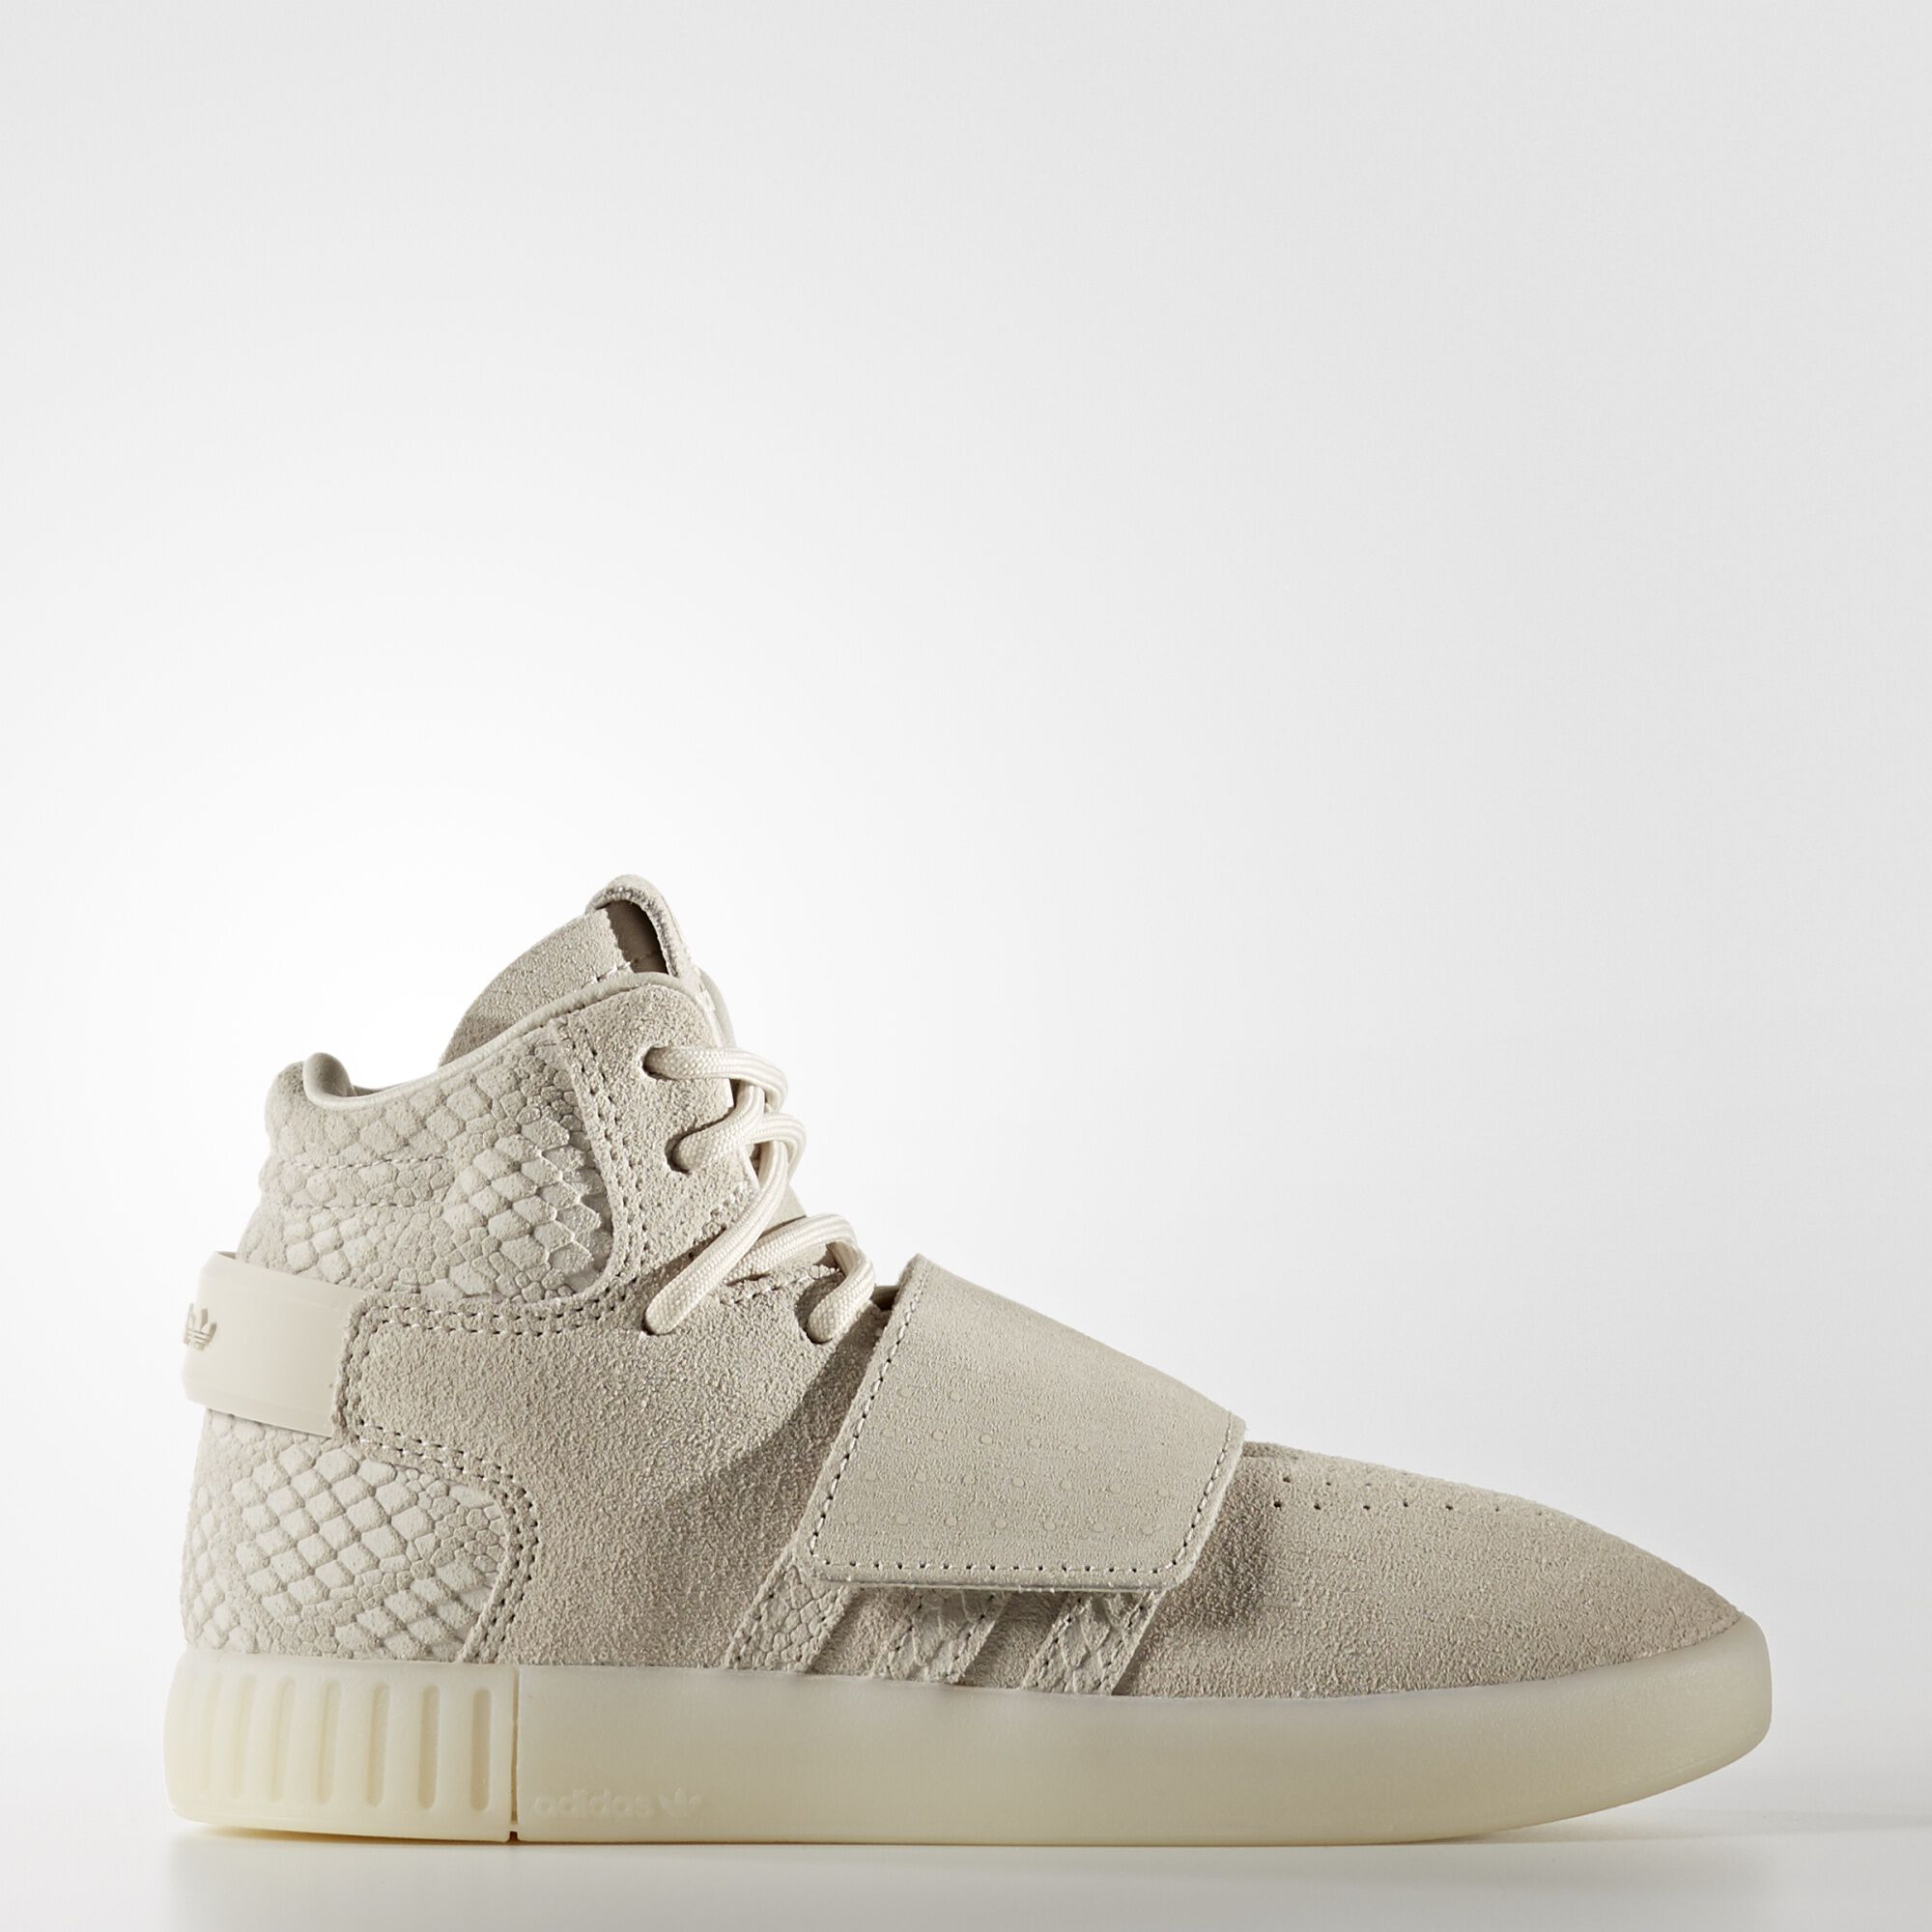 Adidas Tubular Radial Cream